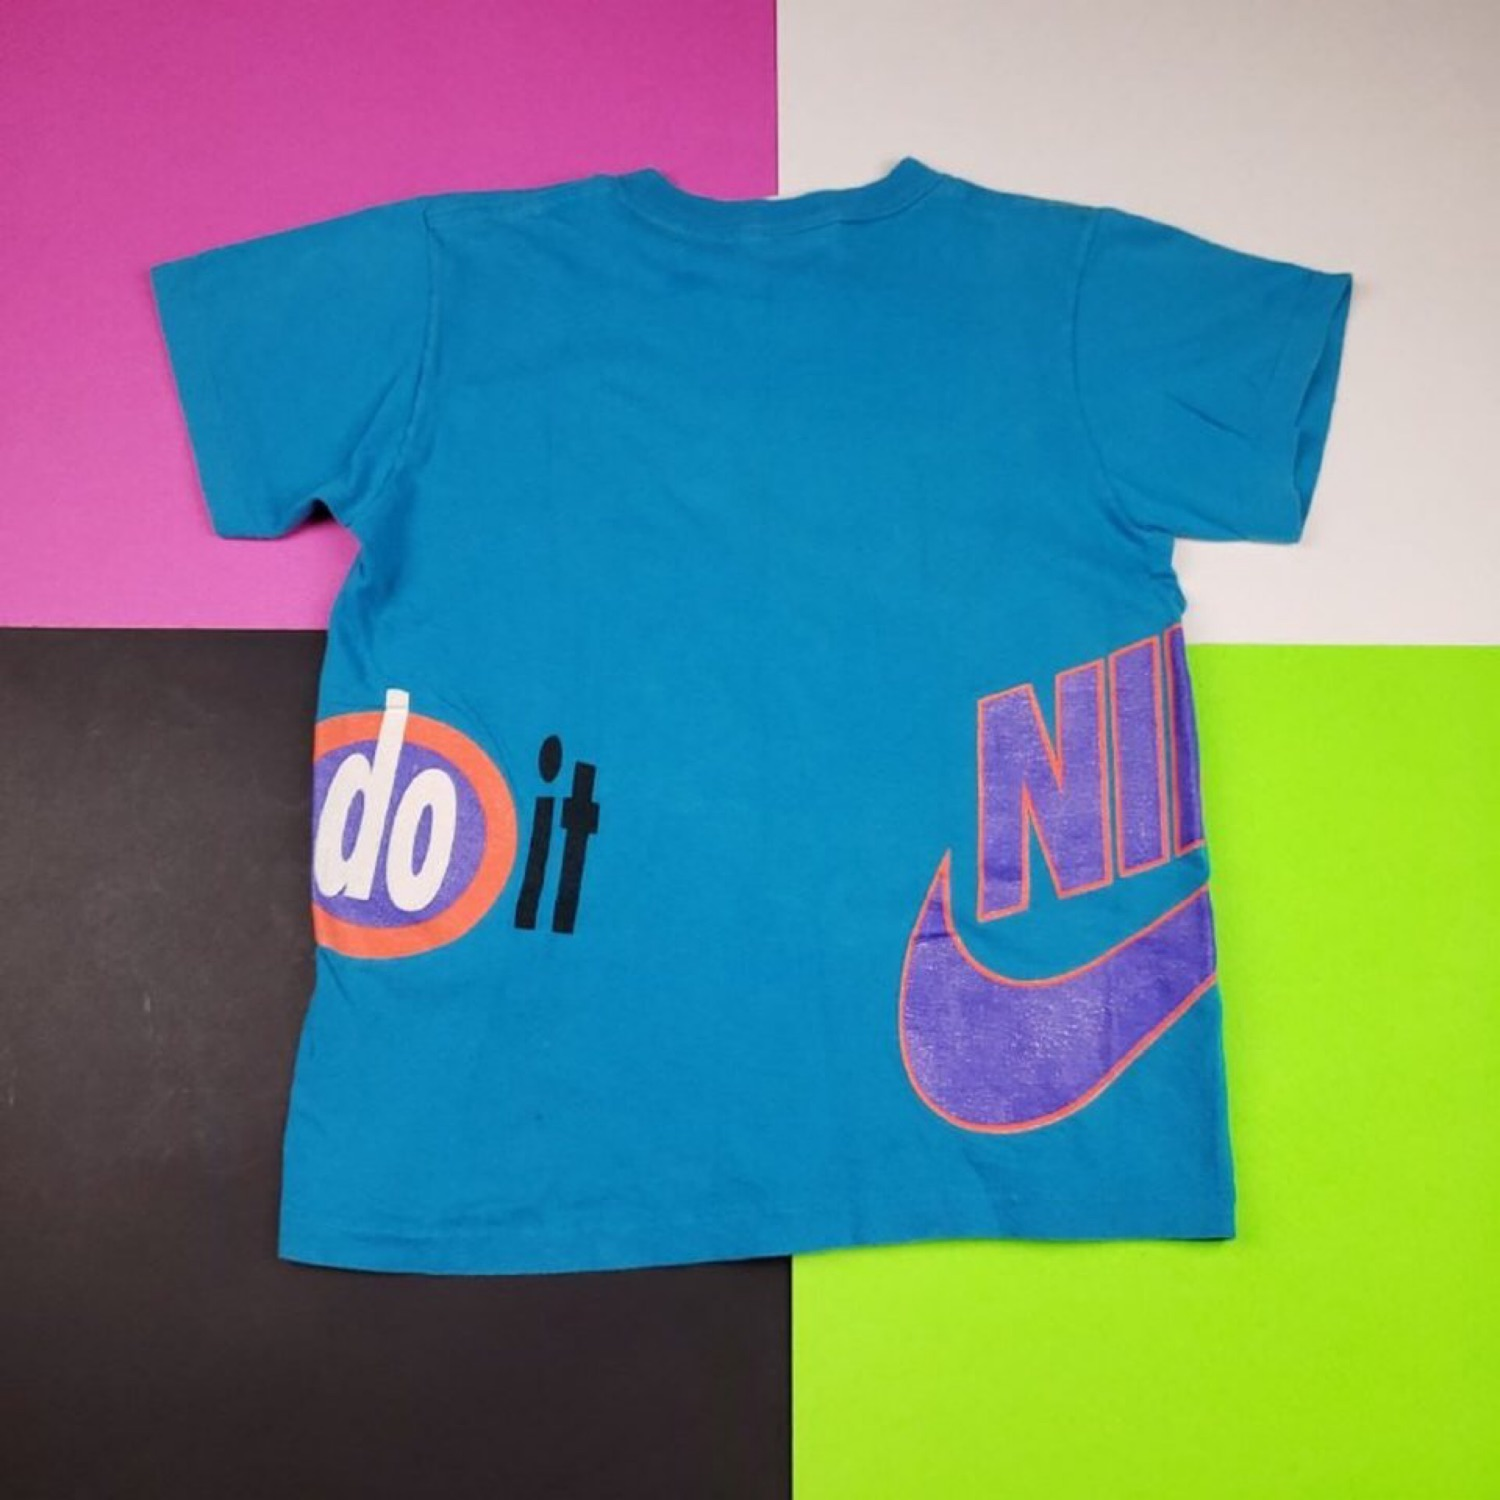 c1bcb50997a70 Rare Vintage 80'S Nike 'Just Do It' Tee